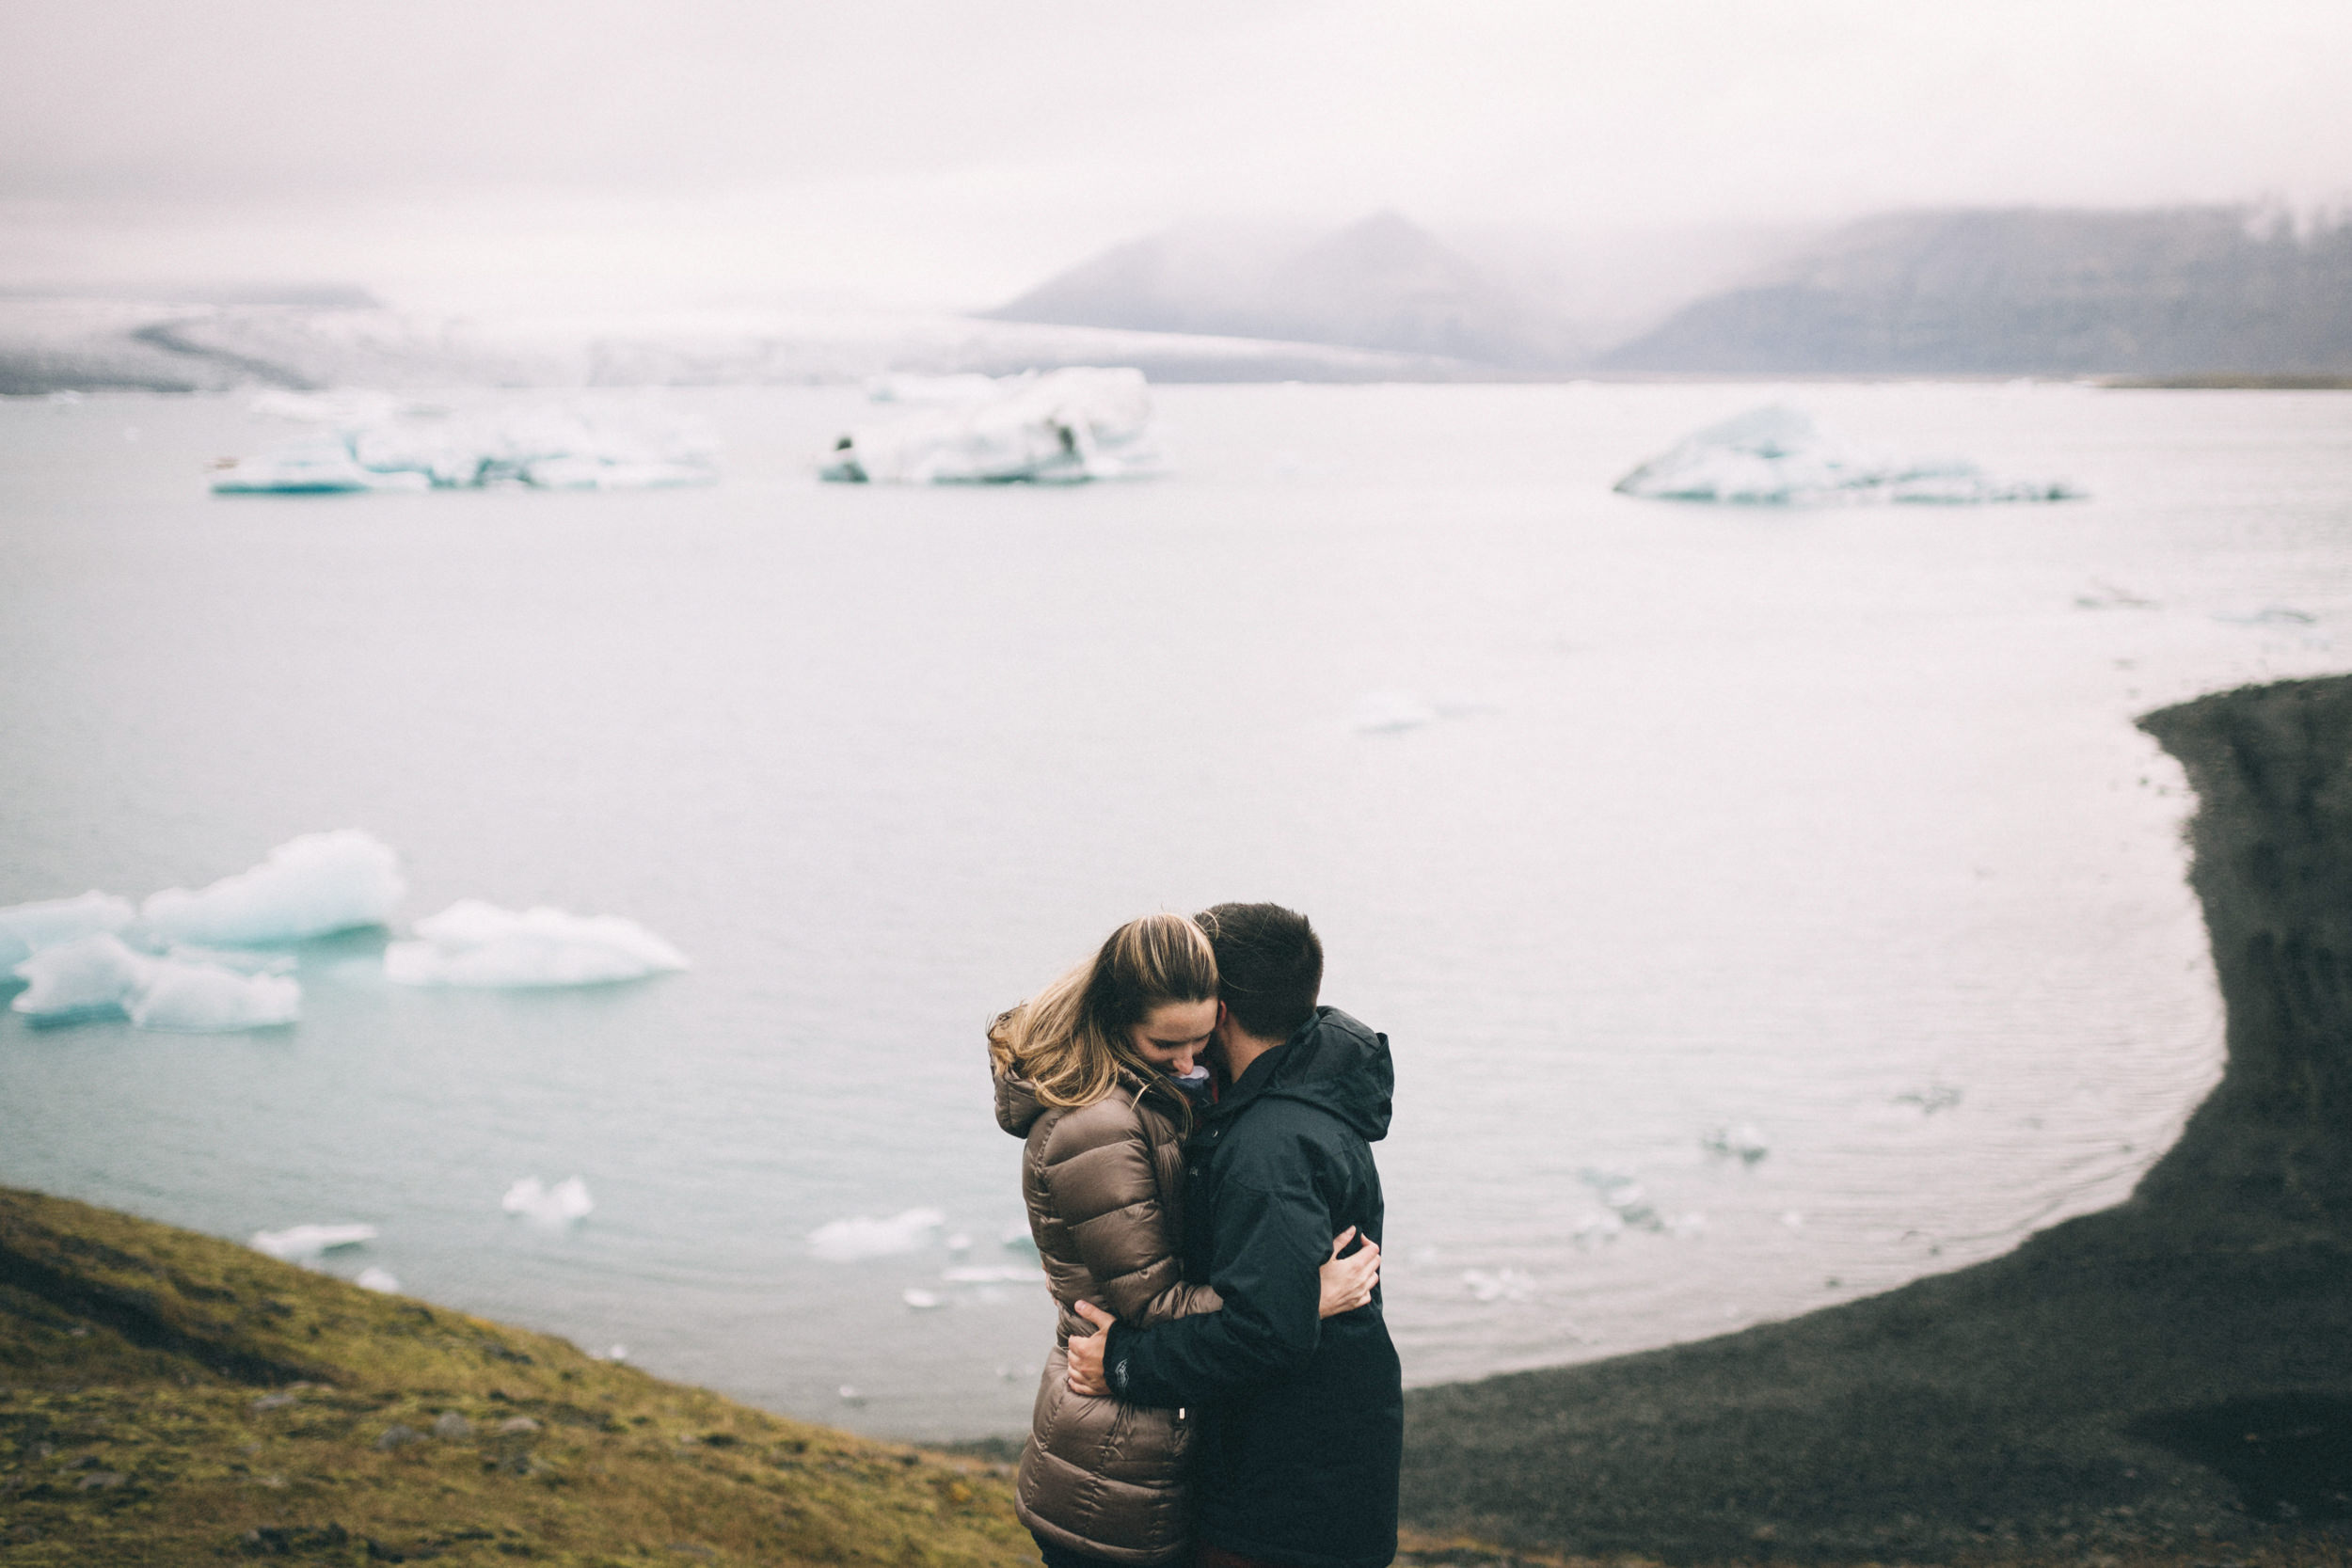 Sarah-Katherine-Davis-Photography-Iceland-Adventure-Elopement-Photographer-Louisville-Kentucky-Wedding-Photographer-Travel-Vik-Beach-Engagement-Session-Cozy-Iceland-South-Coast-346edit.jpg